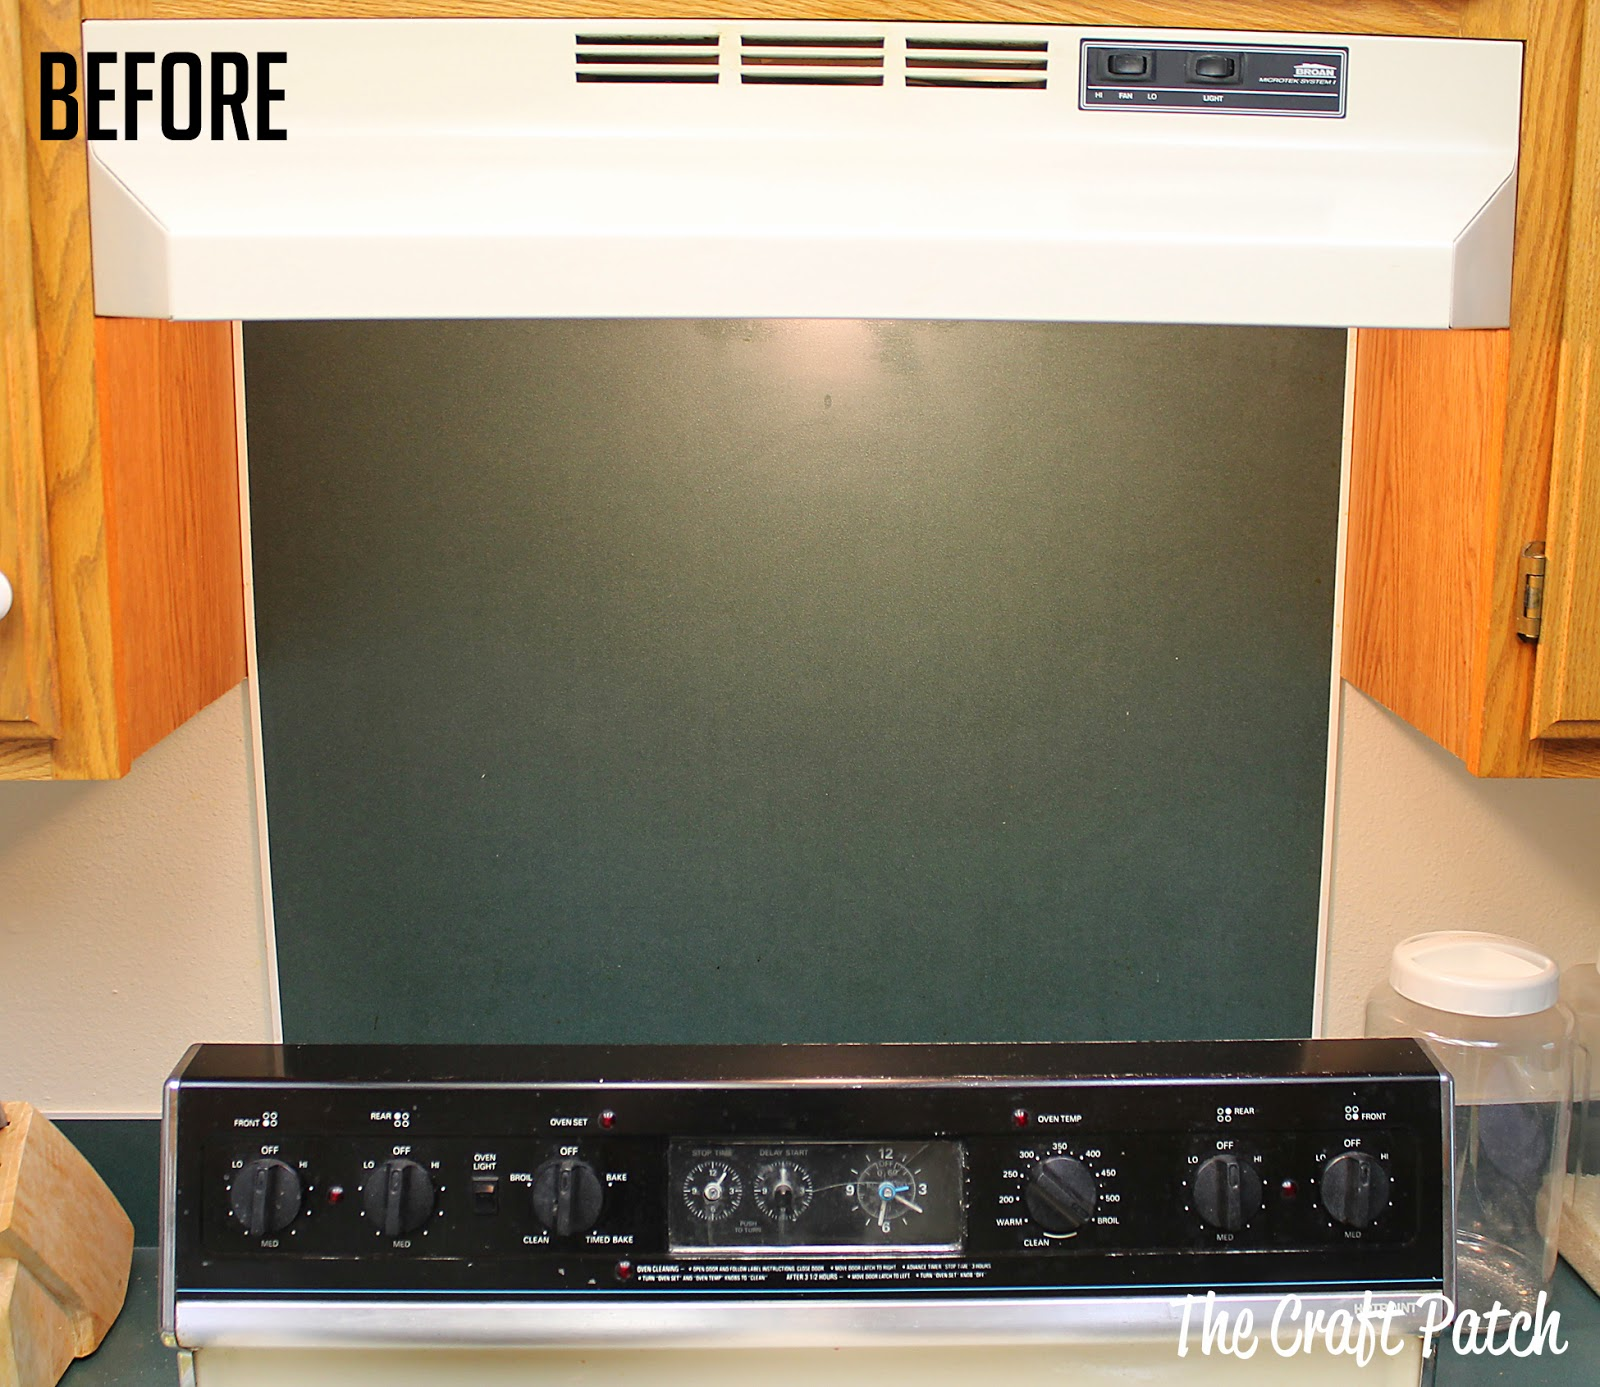 the craft patch: 15 minute kitchen backsplash makeover